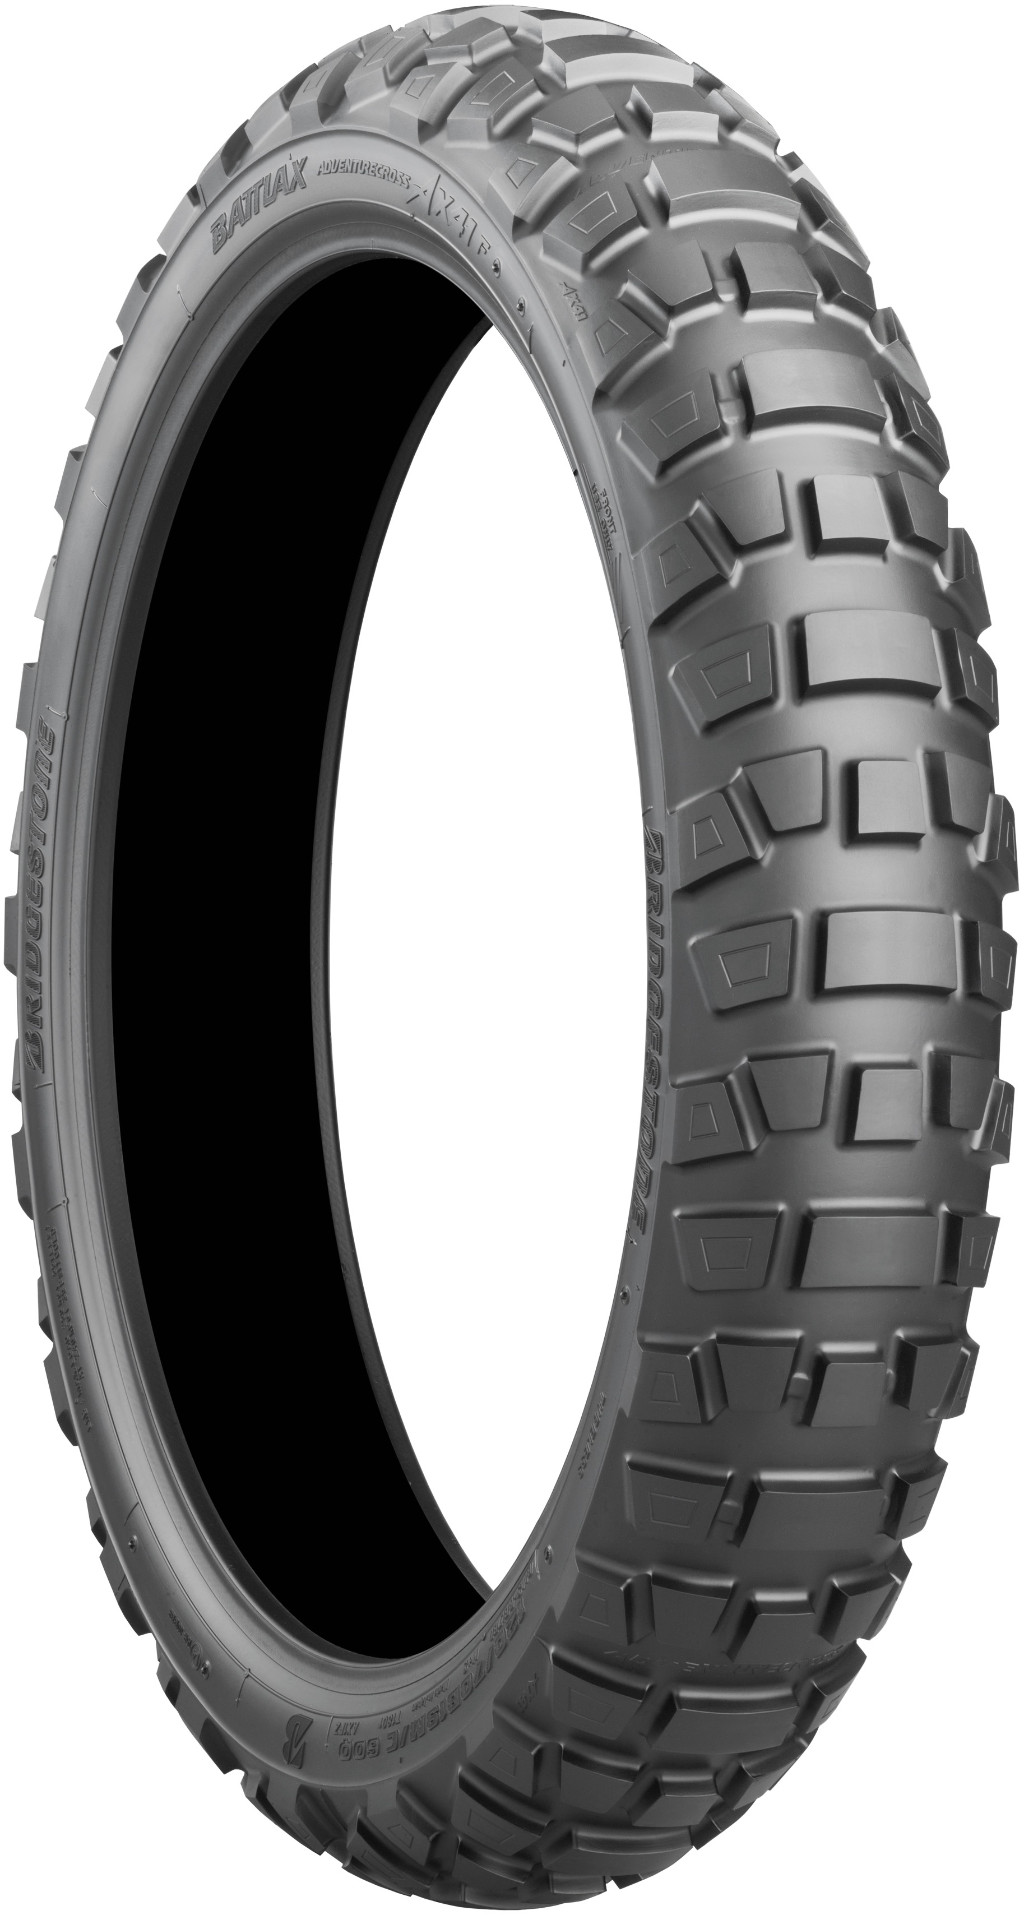 BRIDGESTONE BATTLAX ADVENTURECROSS AX41 [120 / 70B 19M / C60Q] BATTLAX Adven